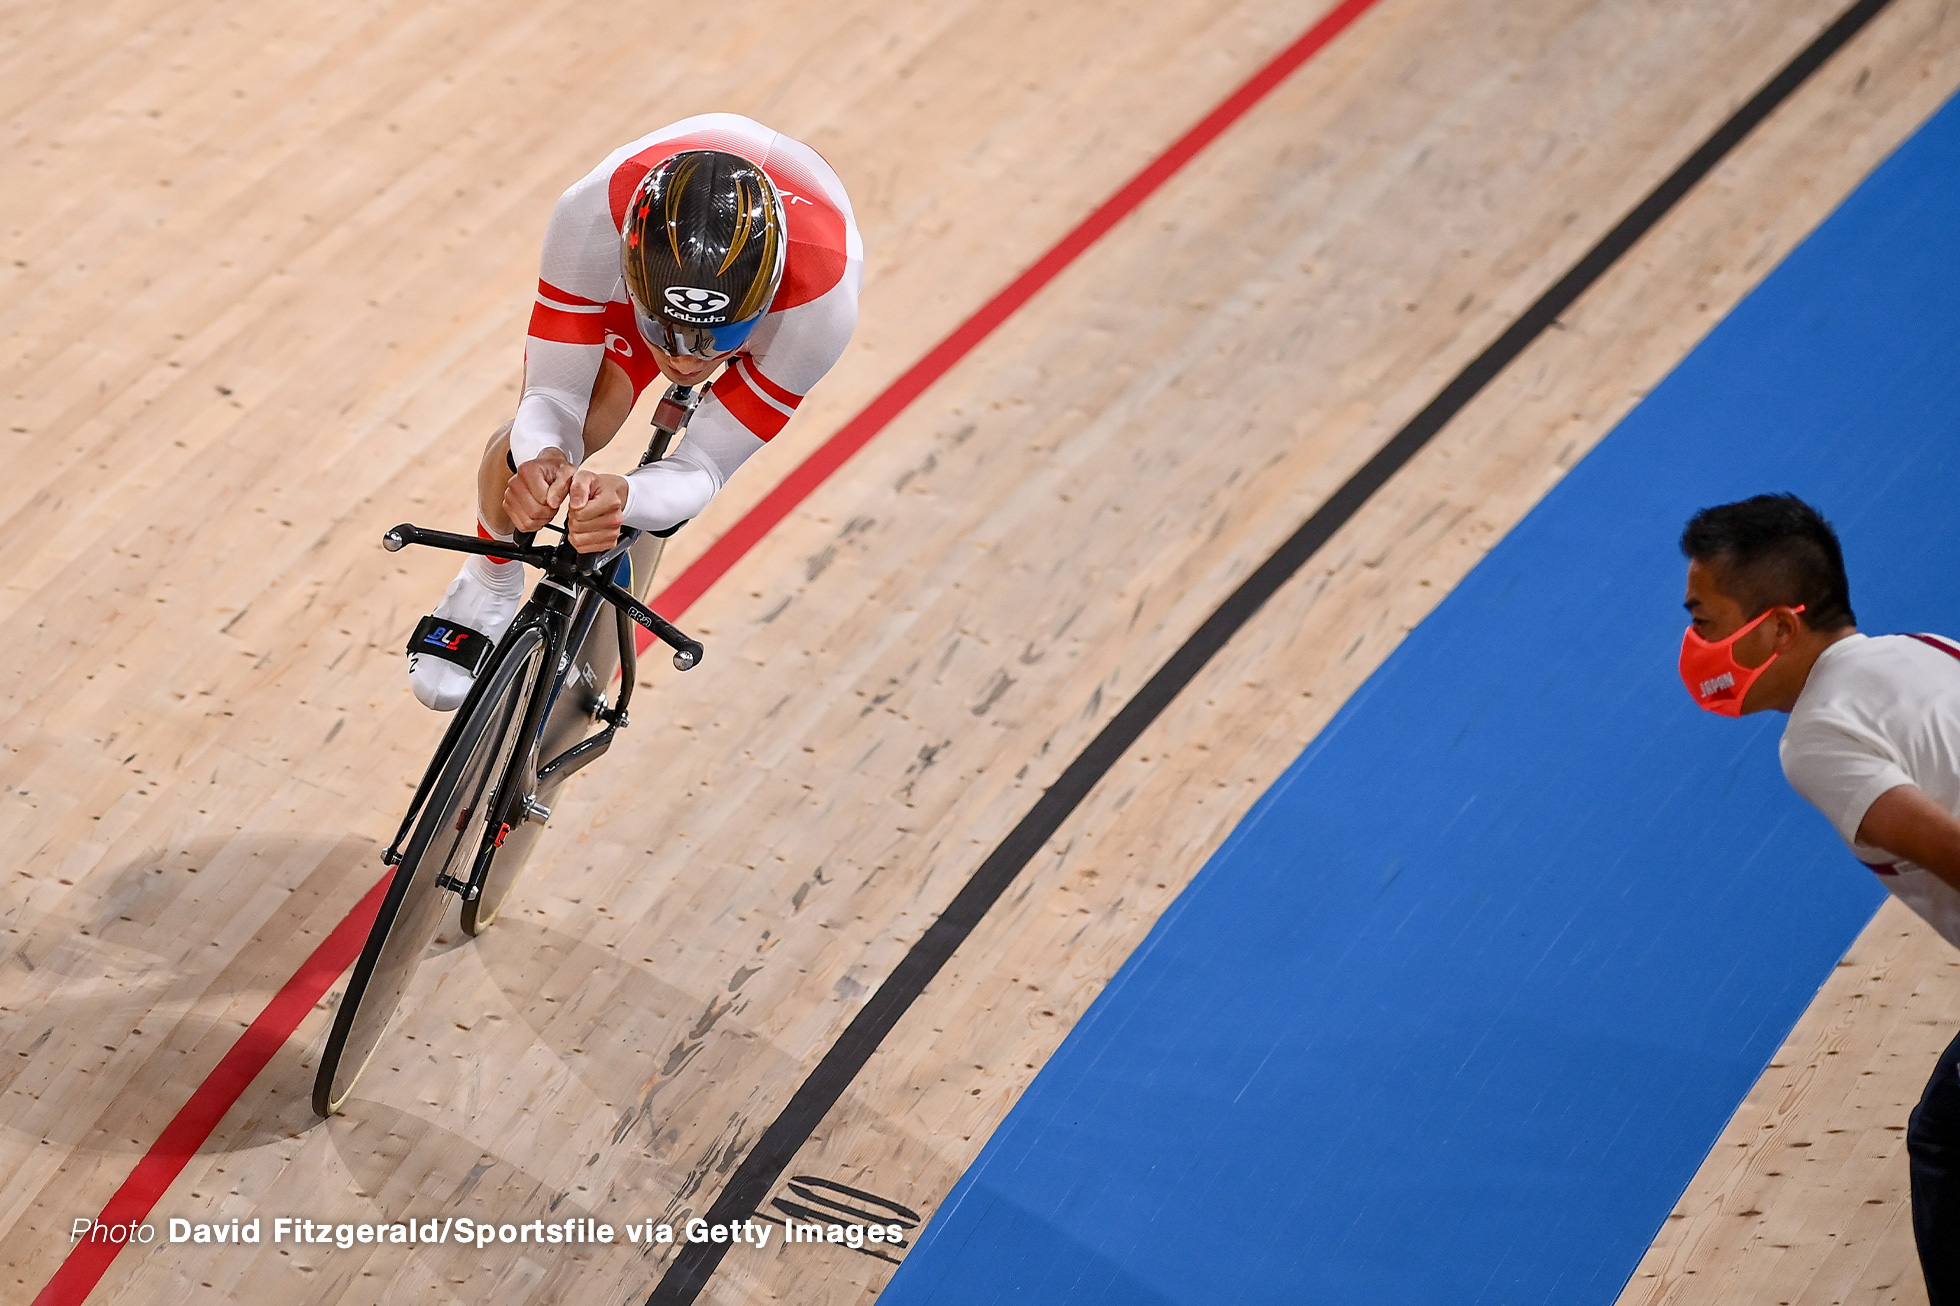 Shizuoka , Japan - 26 August 2021; Shota Kawamoto of Japan on his way to setting a new world record in the Men's C2 3000 metre Individual Pursuit qualifying at the Izu Velodrome on day two during the Tokyo 2020 Paralympic Games in Tokyo, Japan. (Photo By David Fitzgerald/Sportsfile via Getty Images)